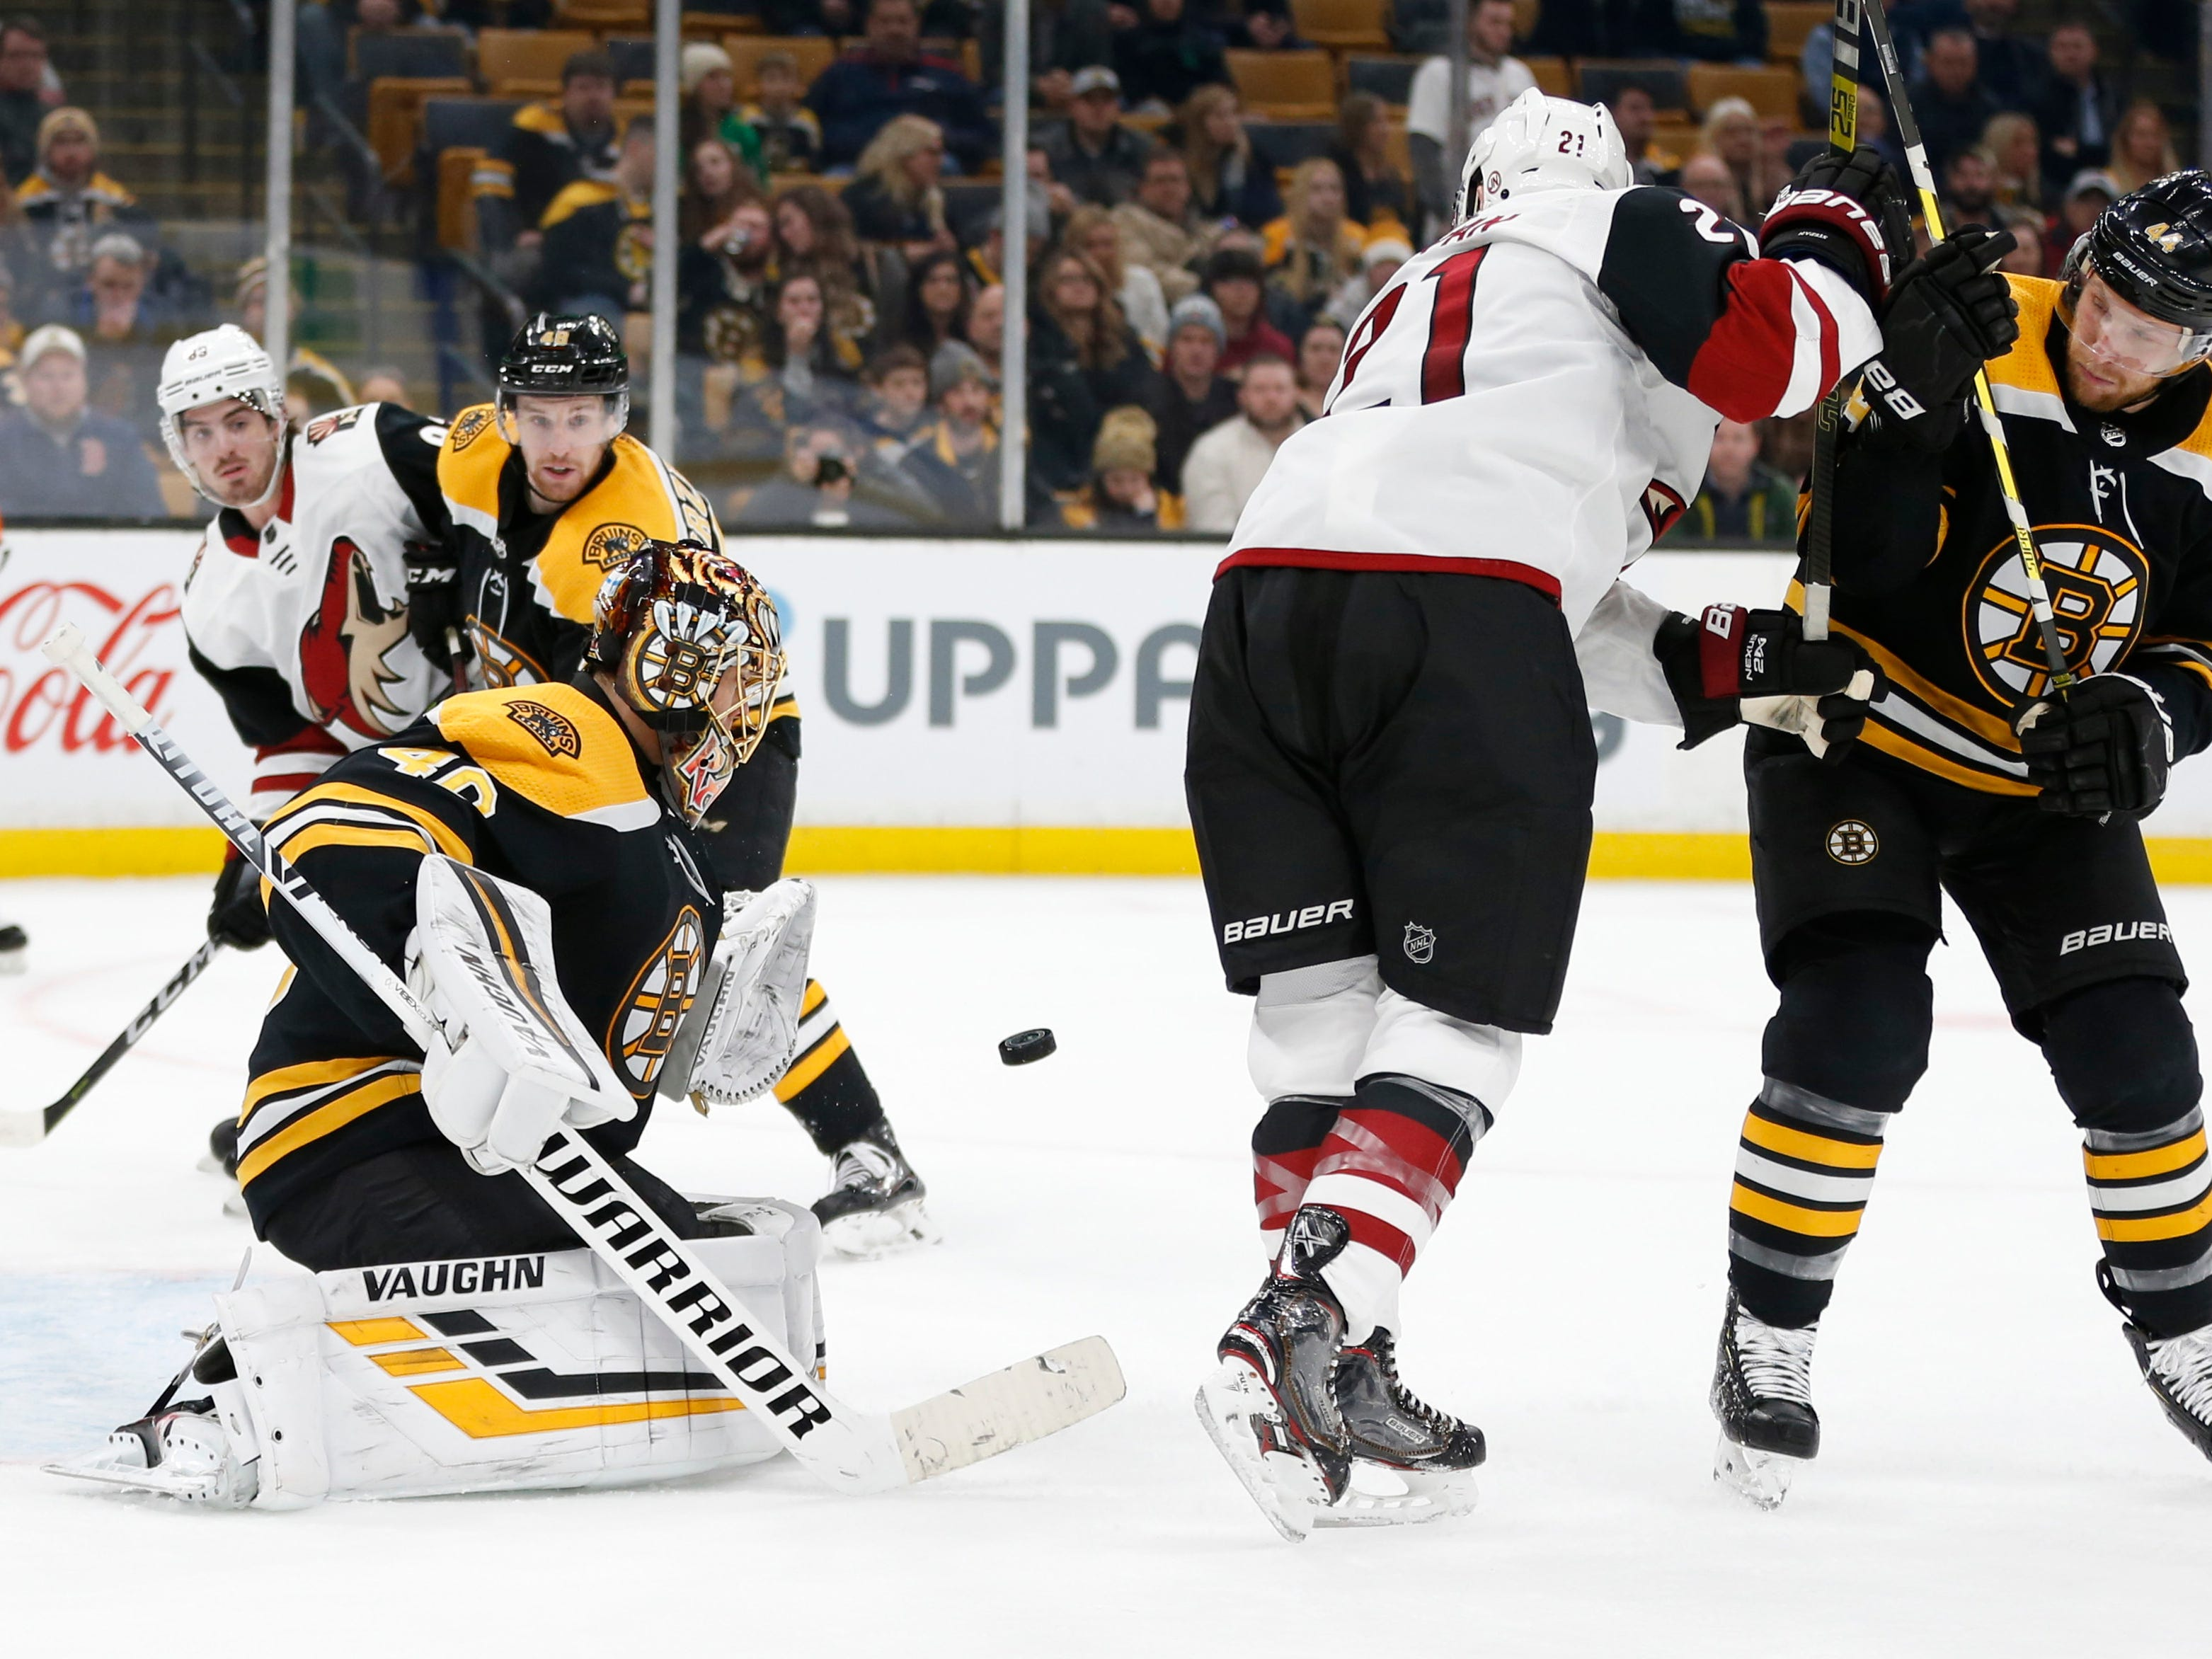 Dec 11, 2018; Boston, MA, USA; Boston Bruins goaltender Tuukka Rask (40) makes a save while defenseman Steven Kampfer (44) battles with Arizona Coyotes center Derek Stepan (21) during the third period at TD Garden. Mandatory Credit: Greg M. Cooper-USA TODAY Sports